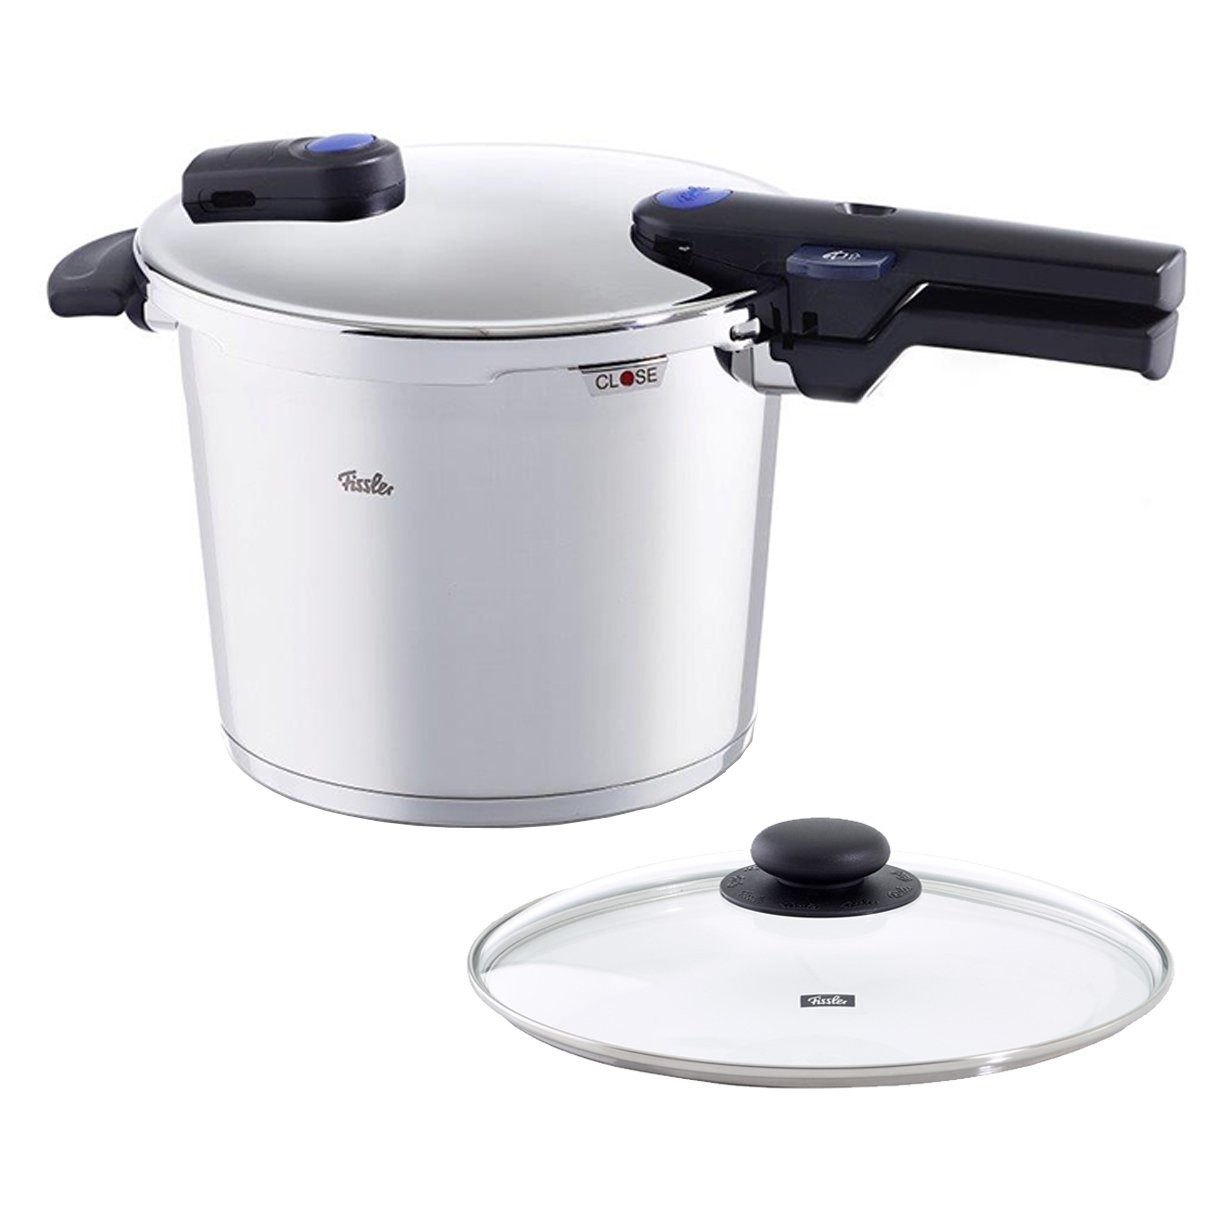 Fissler 6.4 quart Vitaquick Pressure Cooker with Glass Lid Set (FISS-AMZ124BOM)